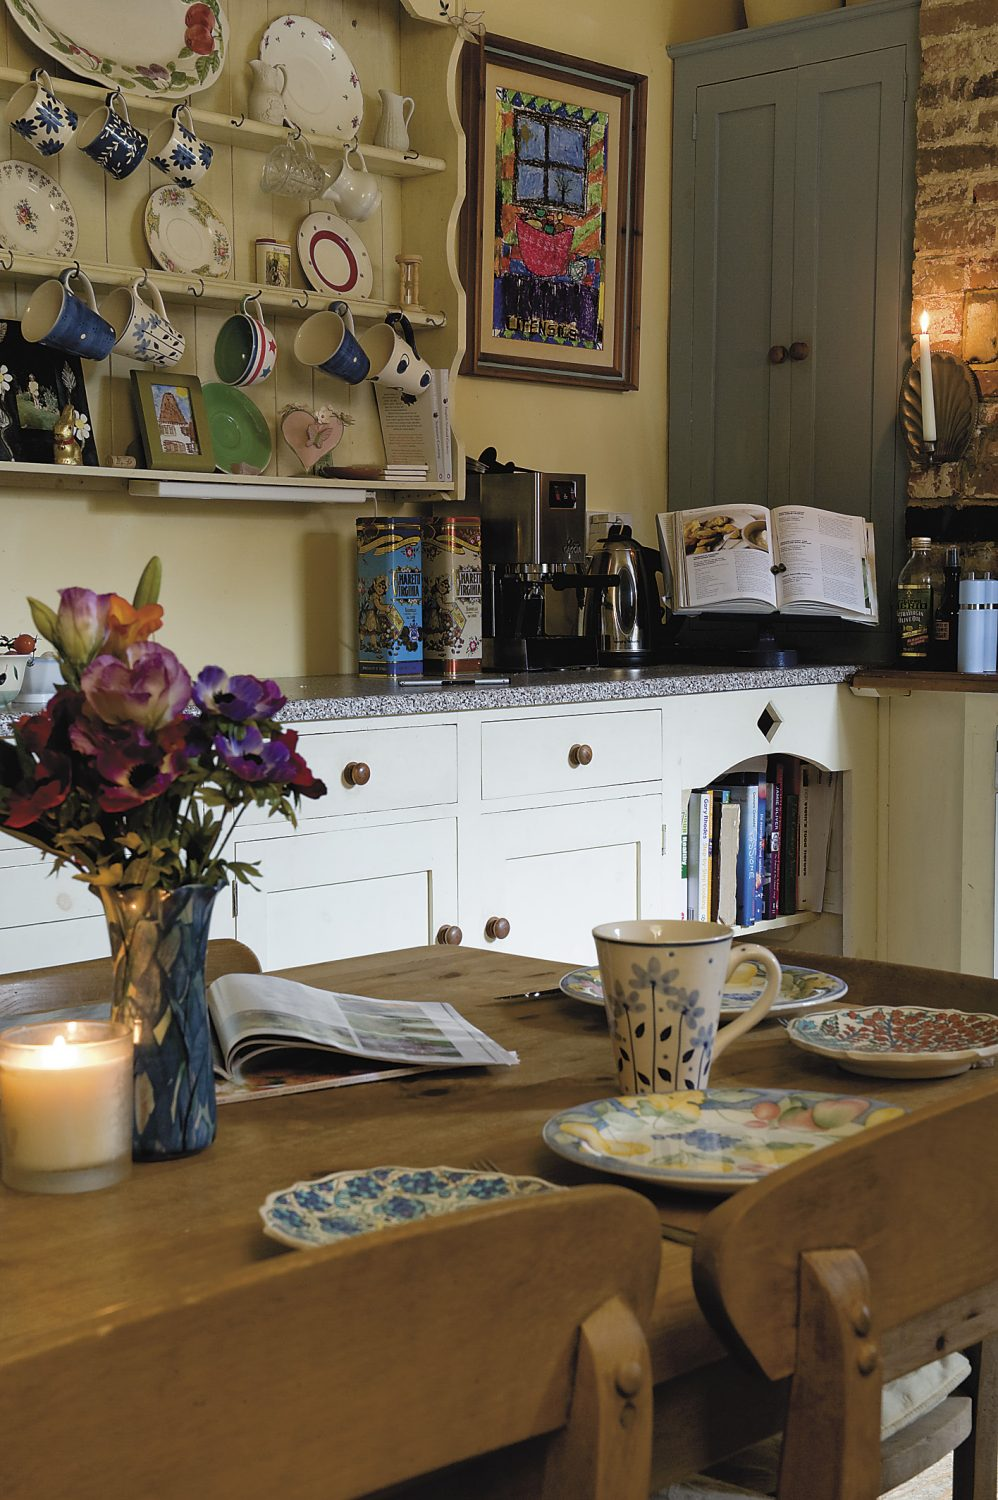 the handmade cupboards and exposed brick chimney breast in the kitchen create a country feel